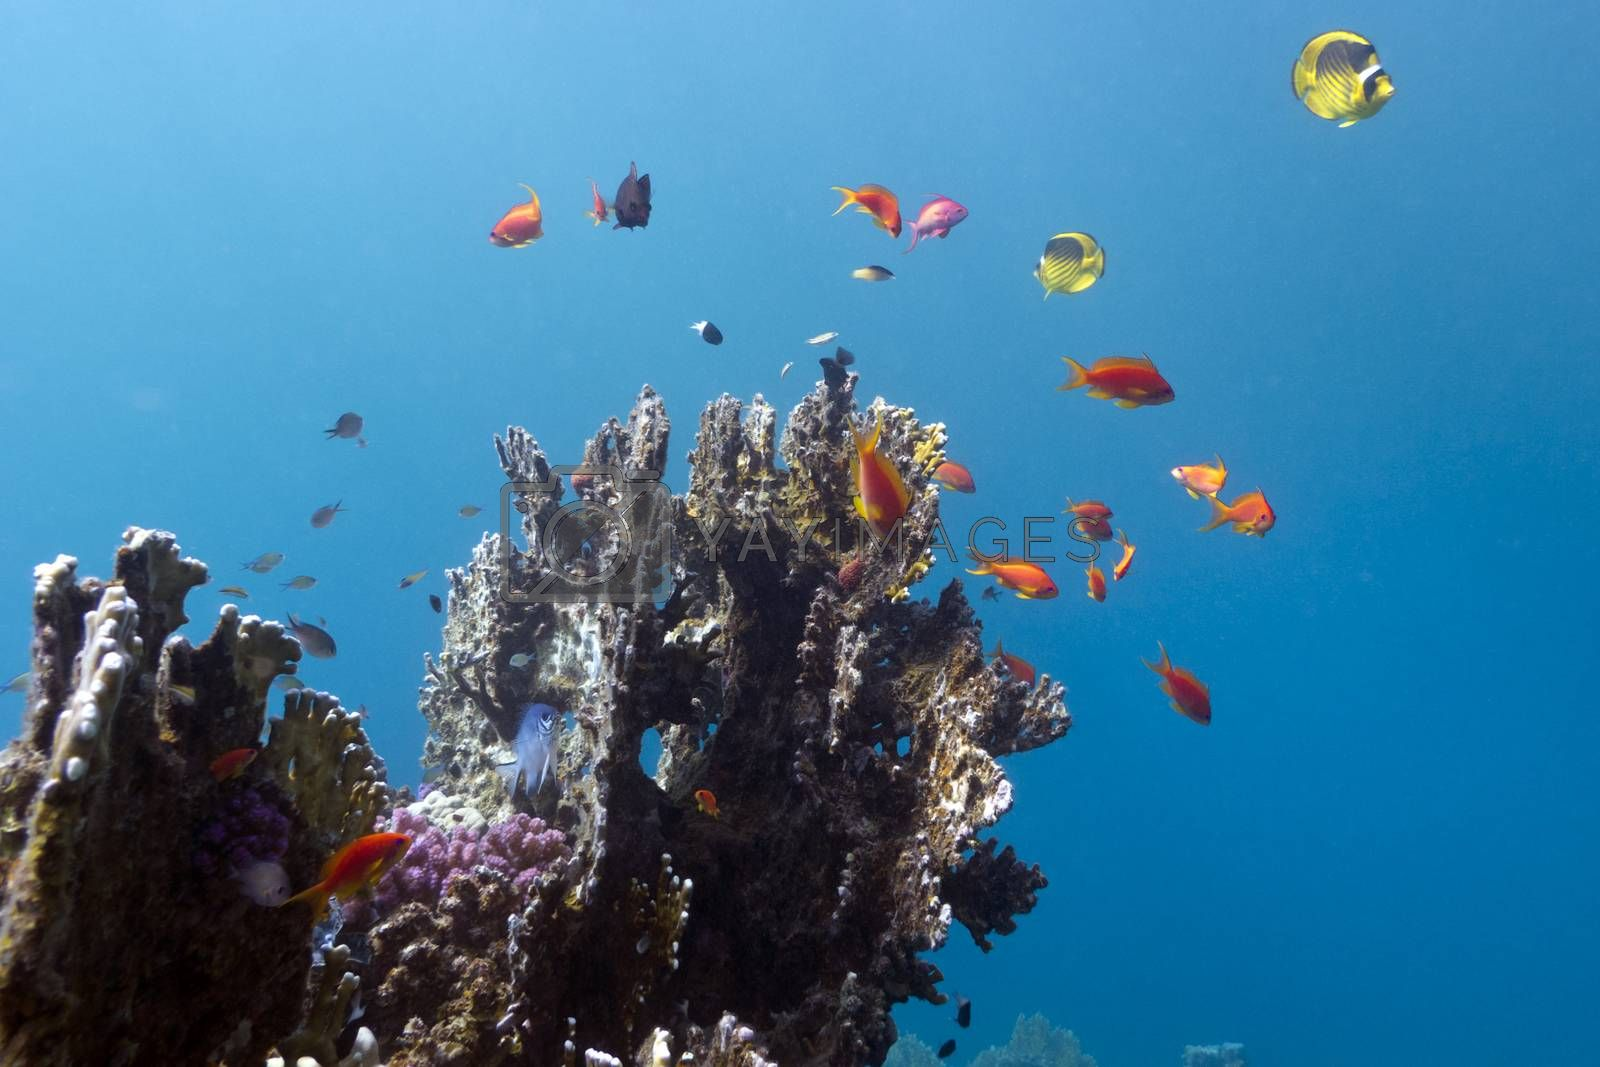 Royalty free image of coral reef with exotic colorful fishes on blue water background by mychadre77